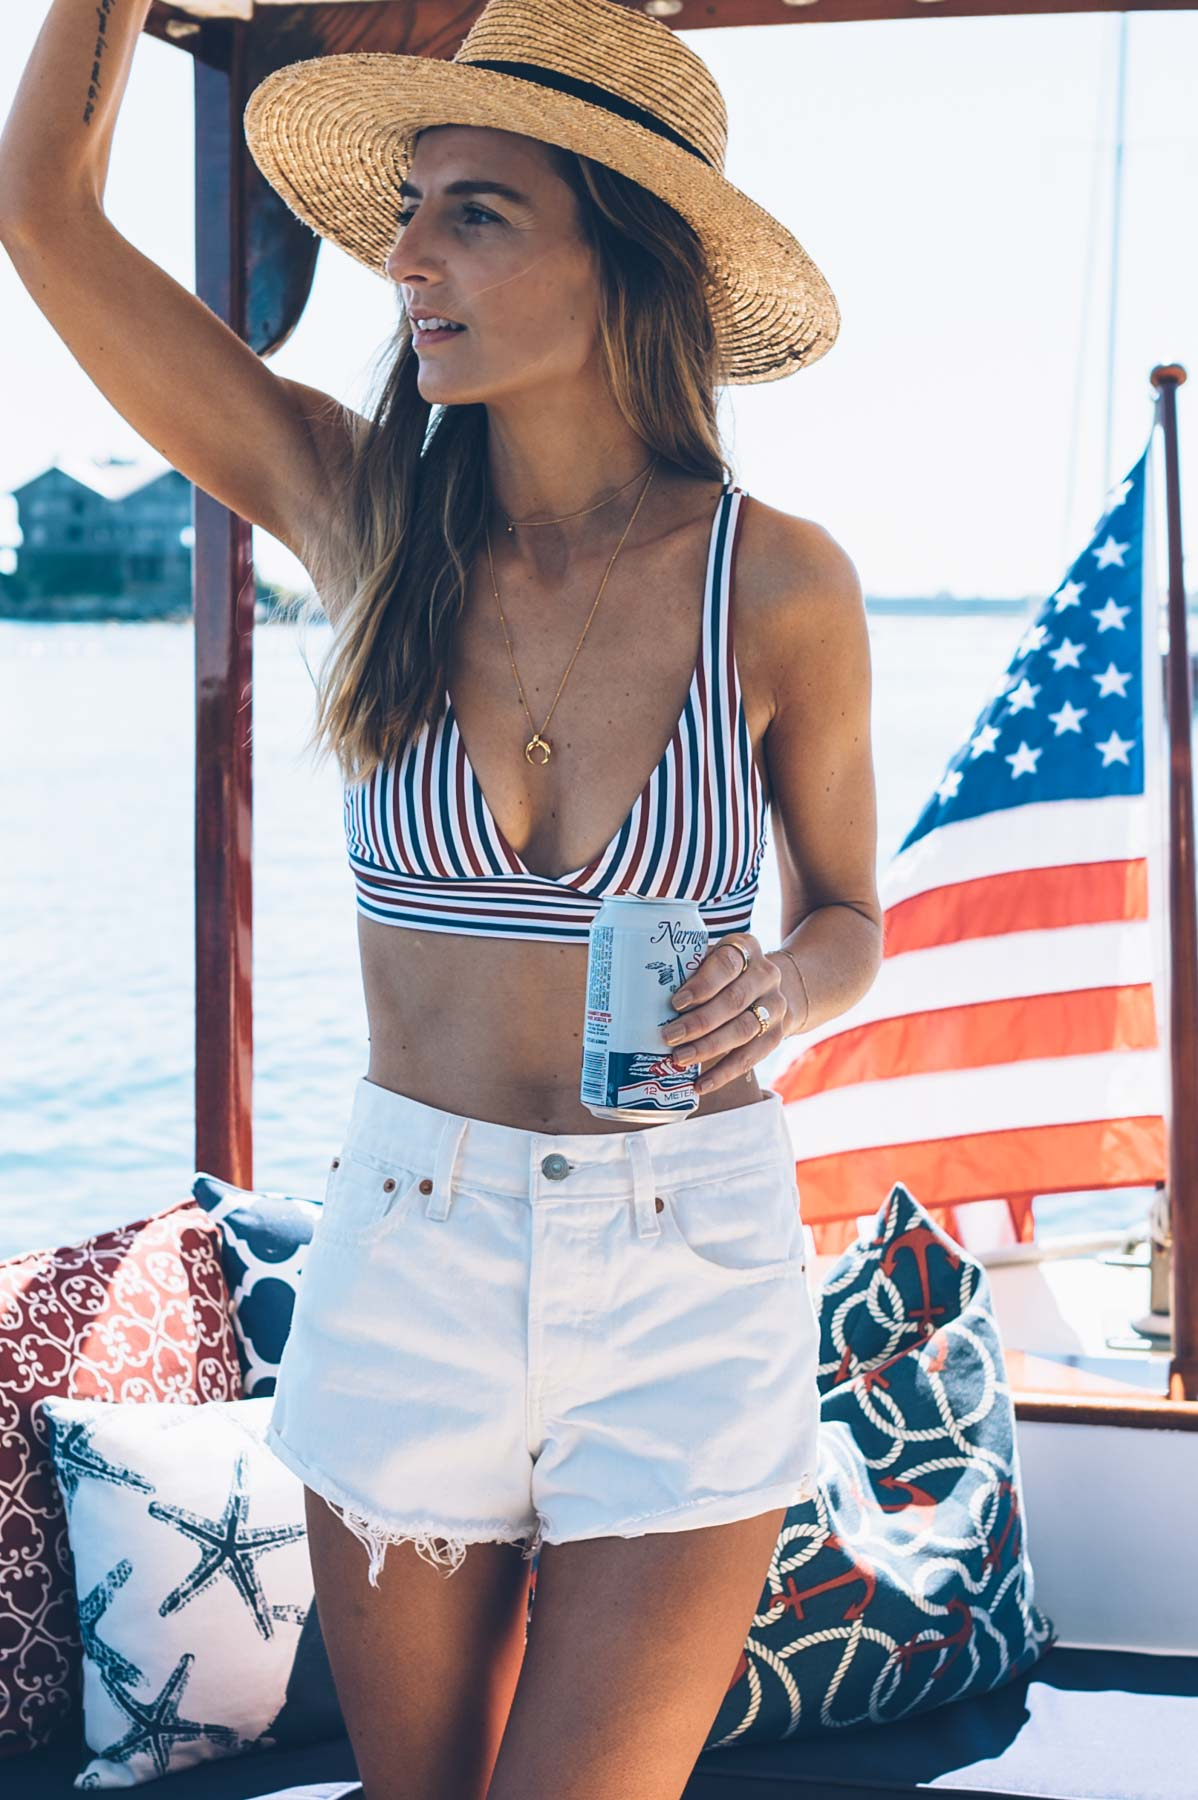 Jess Kirby wearing a Boys + Arrows striped bikini with Levi's wedgie high rise shorts for July 4th